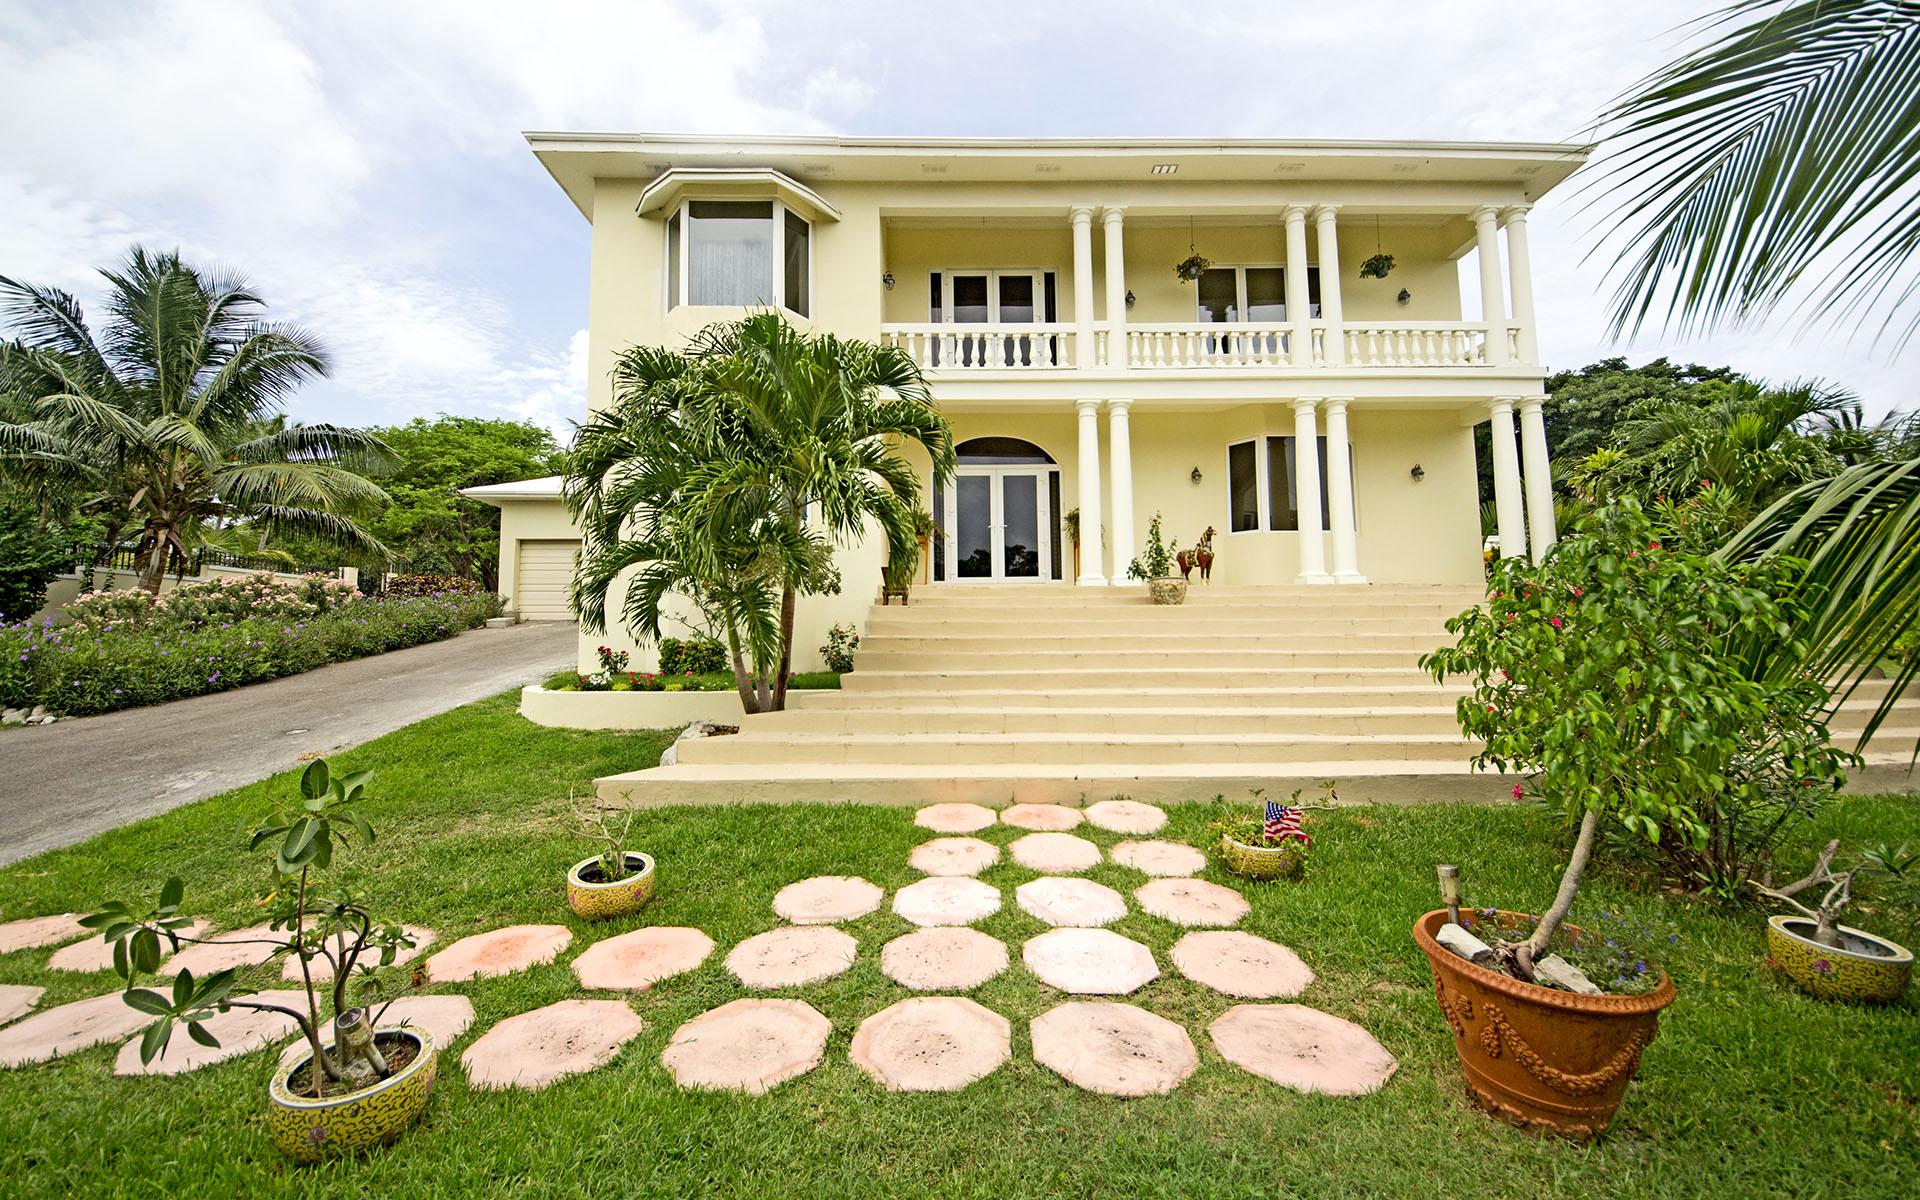 Single Family Home for Sale at Wild Tamarind Drive, Camperdown - MLS 28293 Camperdown, Nassau And Paradise Island, Bahamas